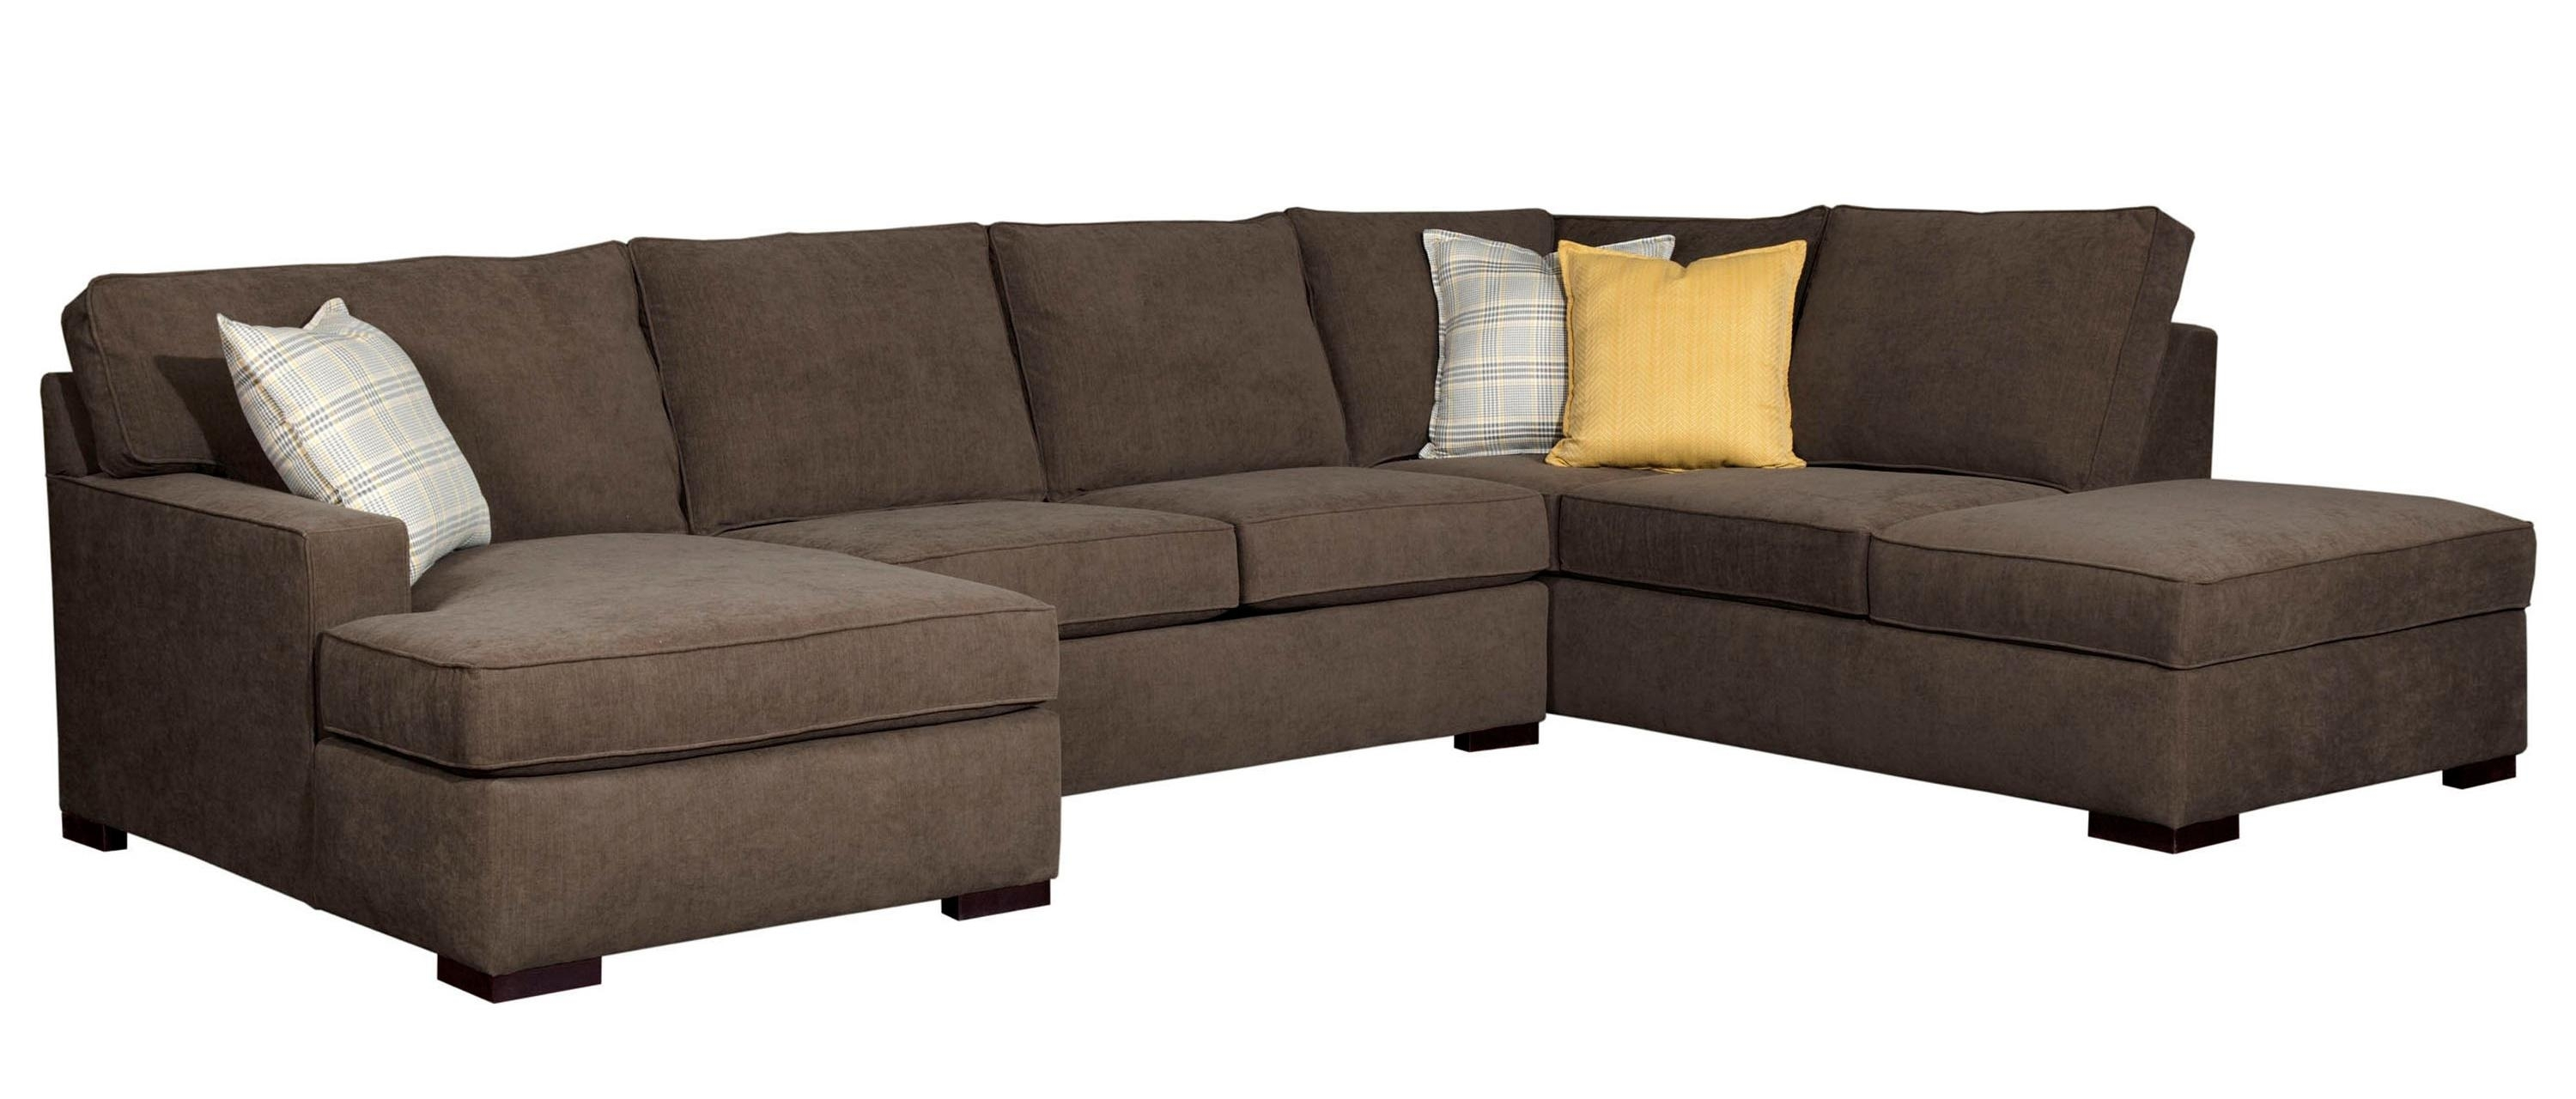 Broyhill Furniture Raphael Contemporary Sectional Sofa With Laf In Sam Levitz Sectional Sofas (View 4 of 10)